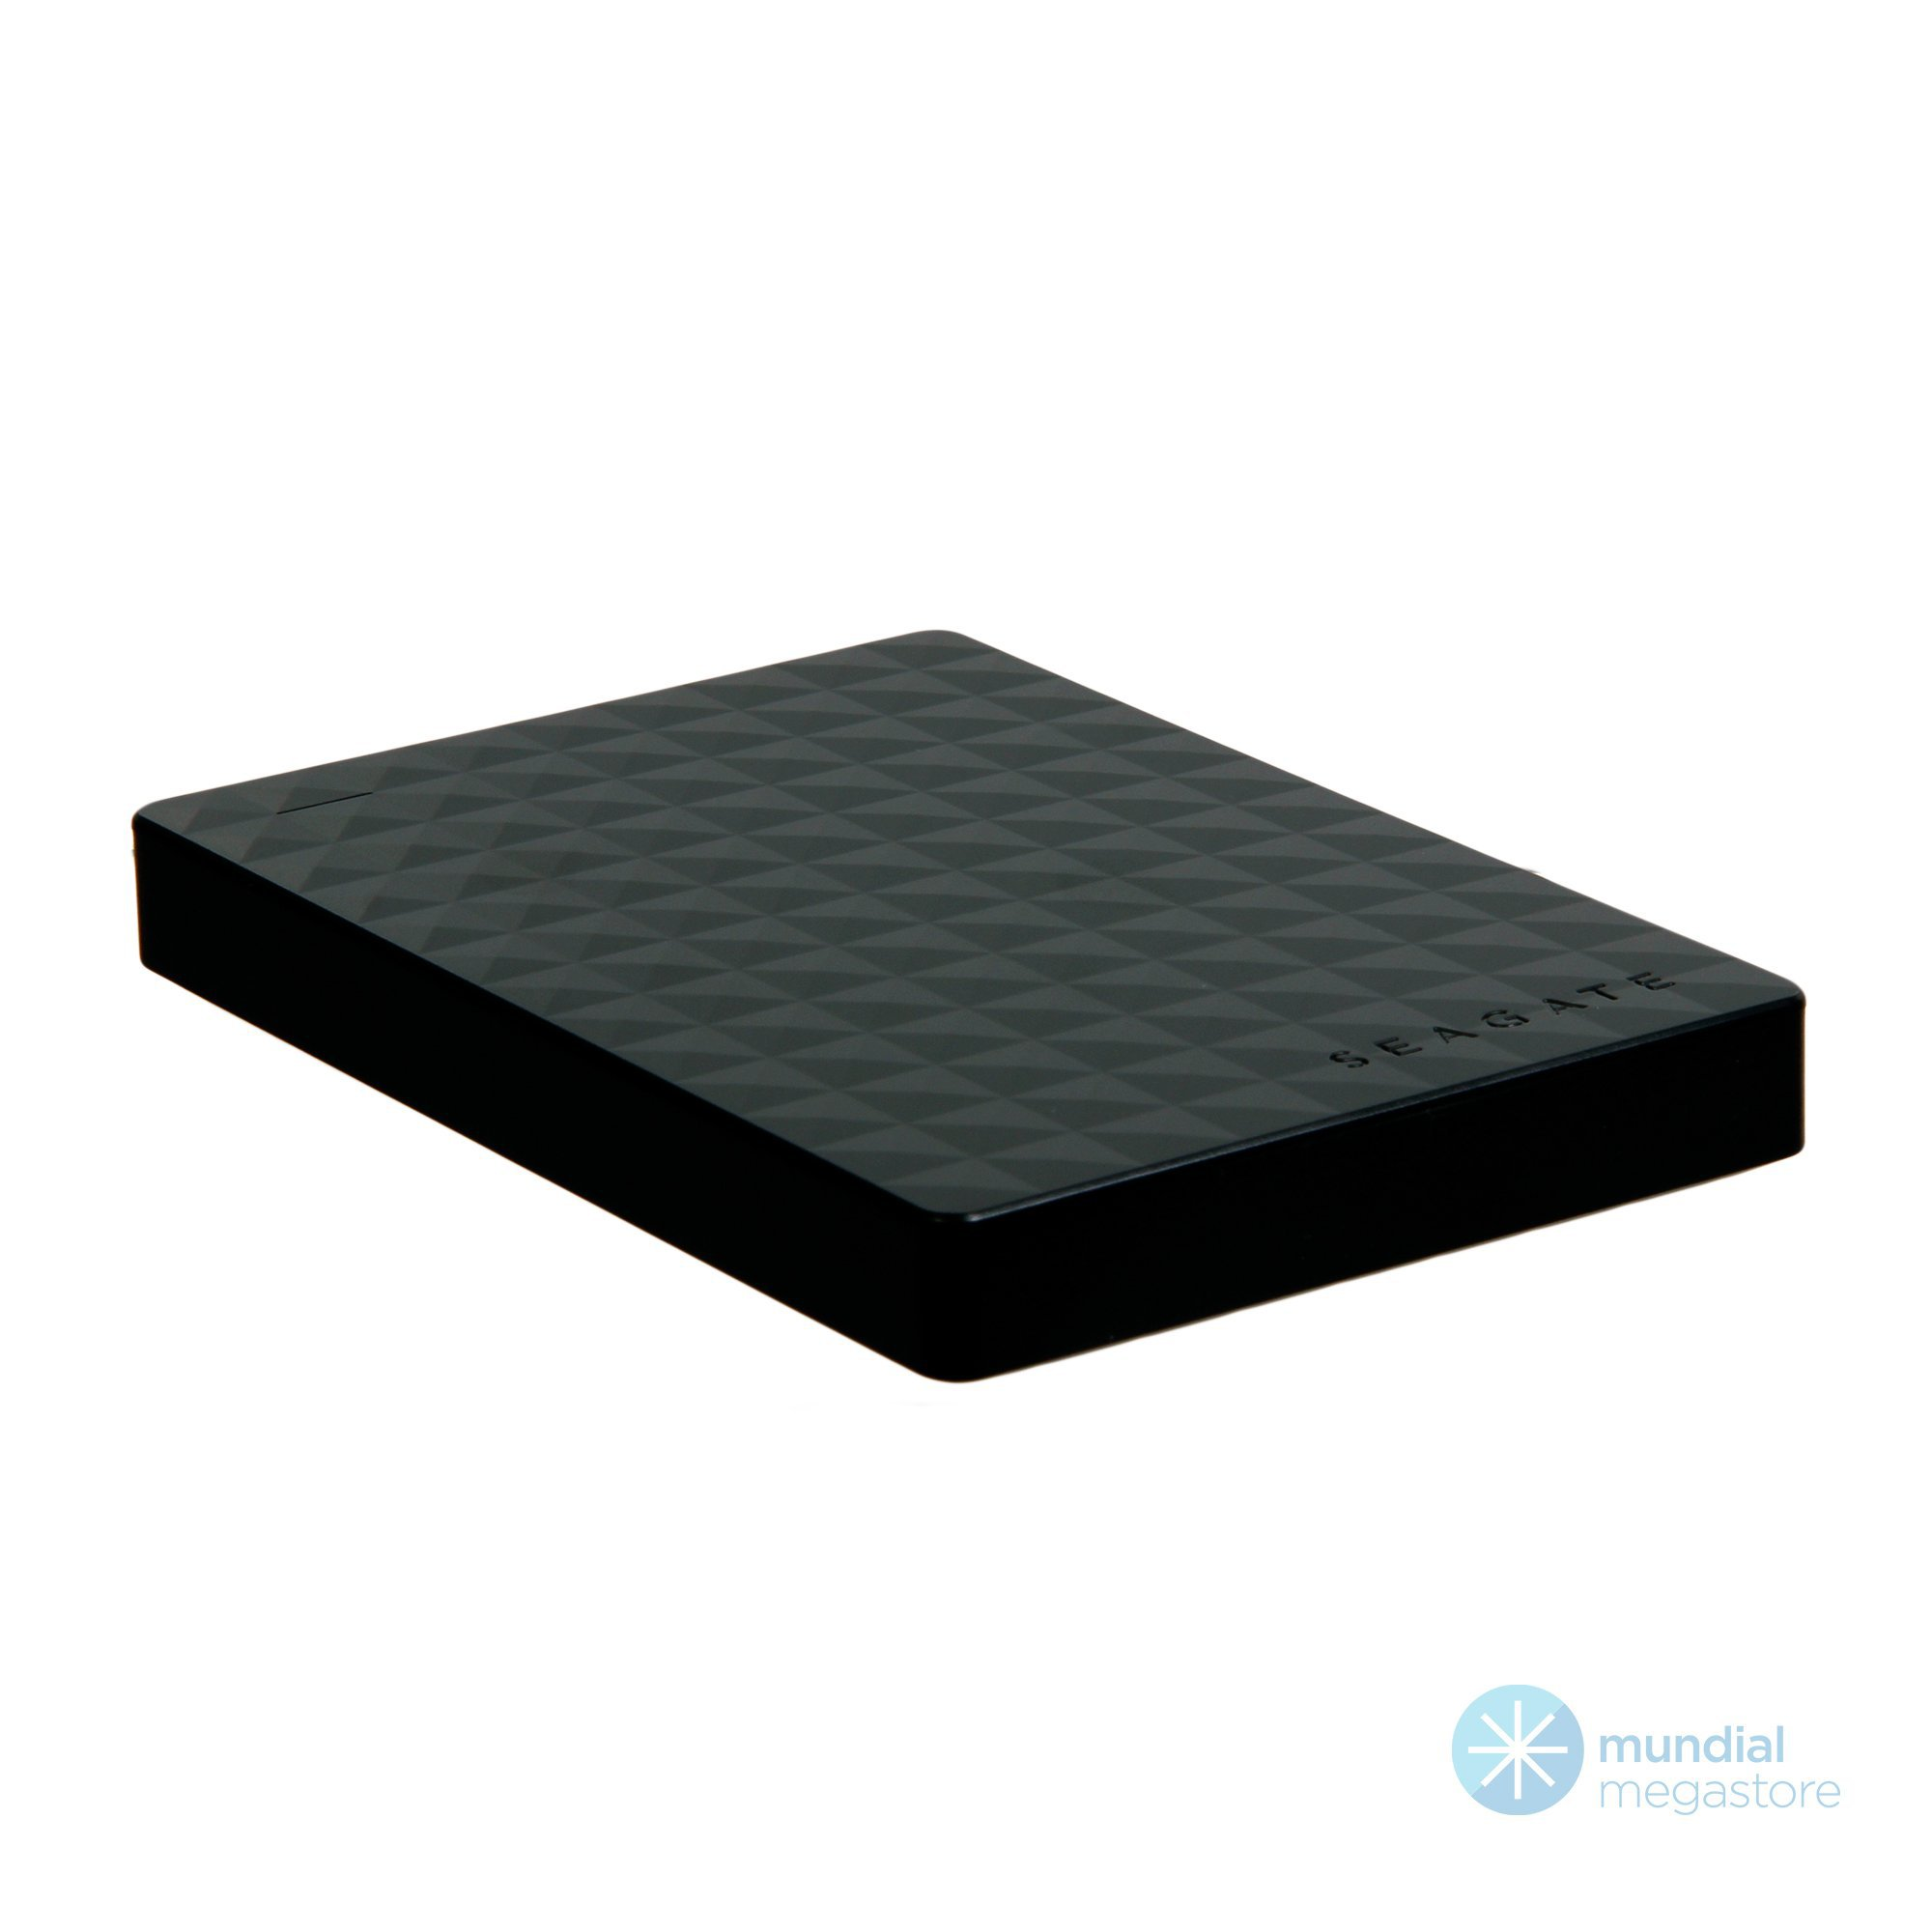 hd externo usb 25 10tb seagate expansion 30 mms 48640 2000 201952